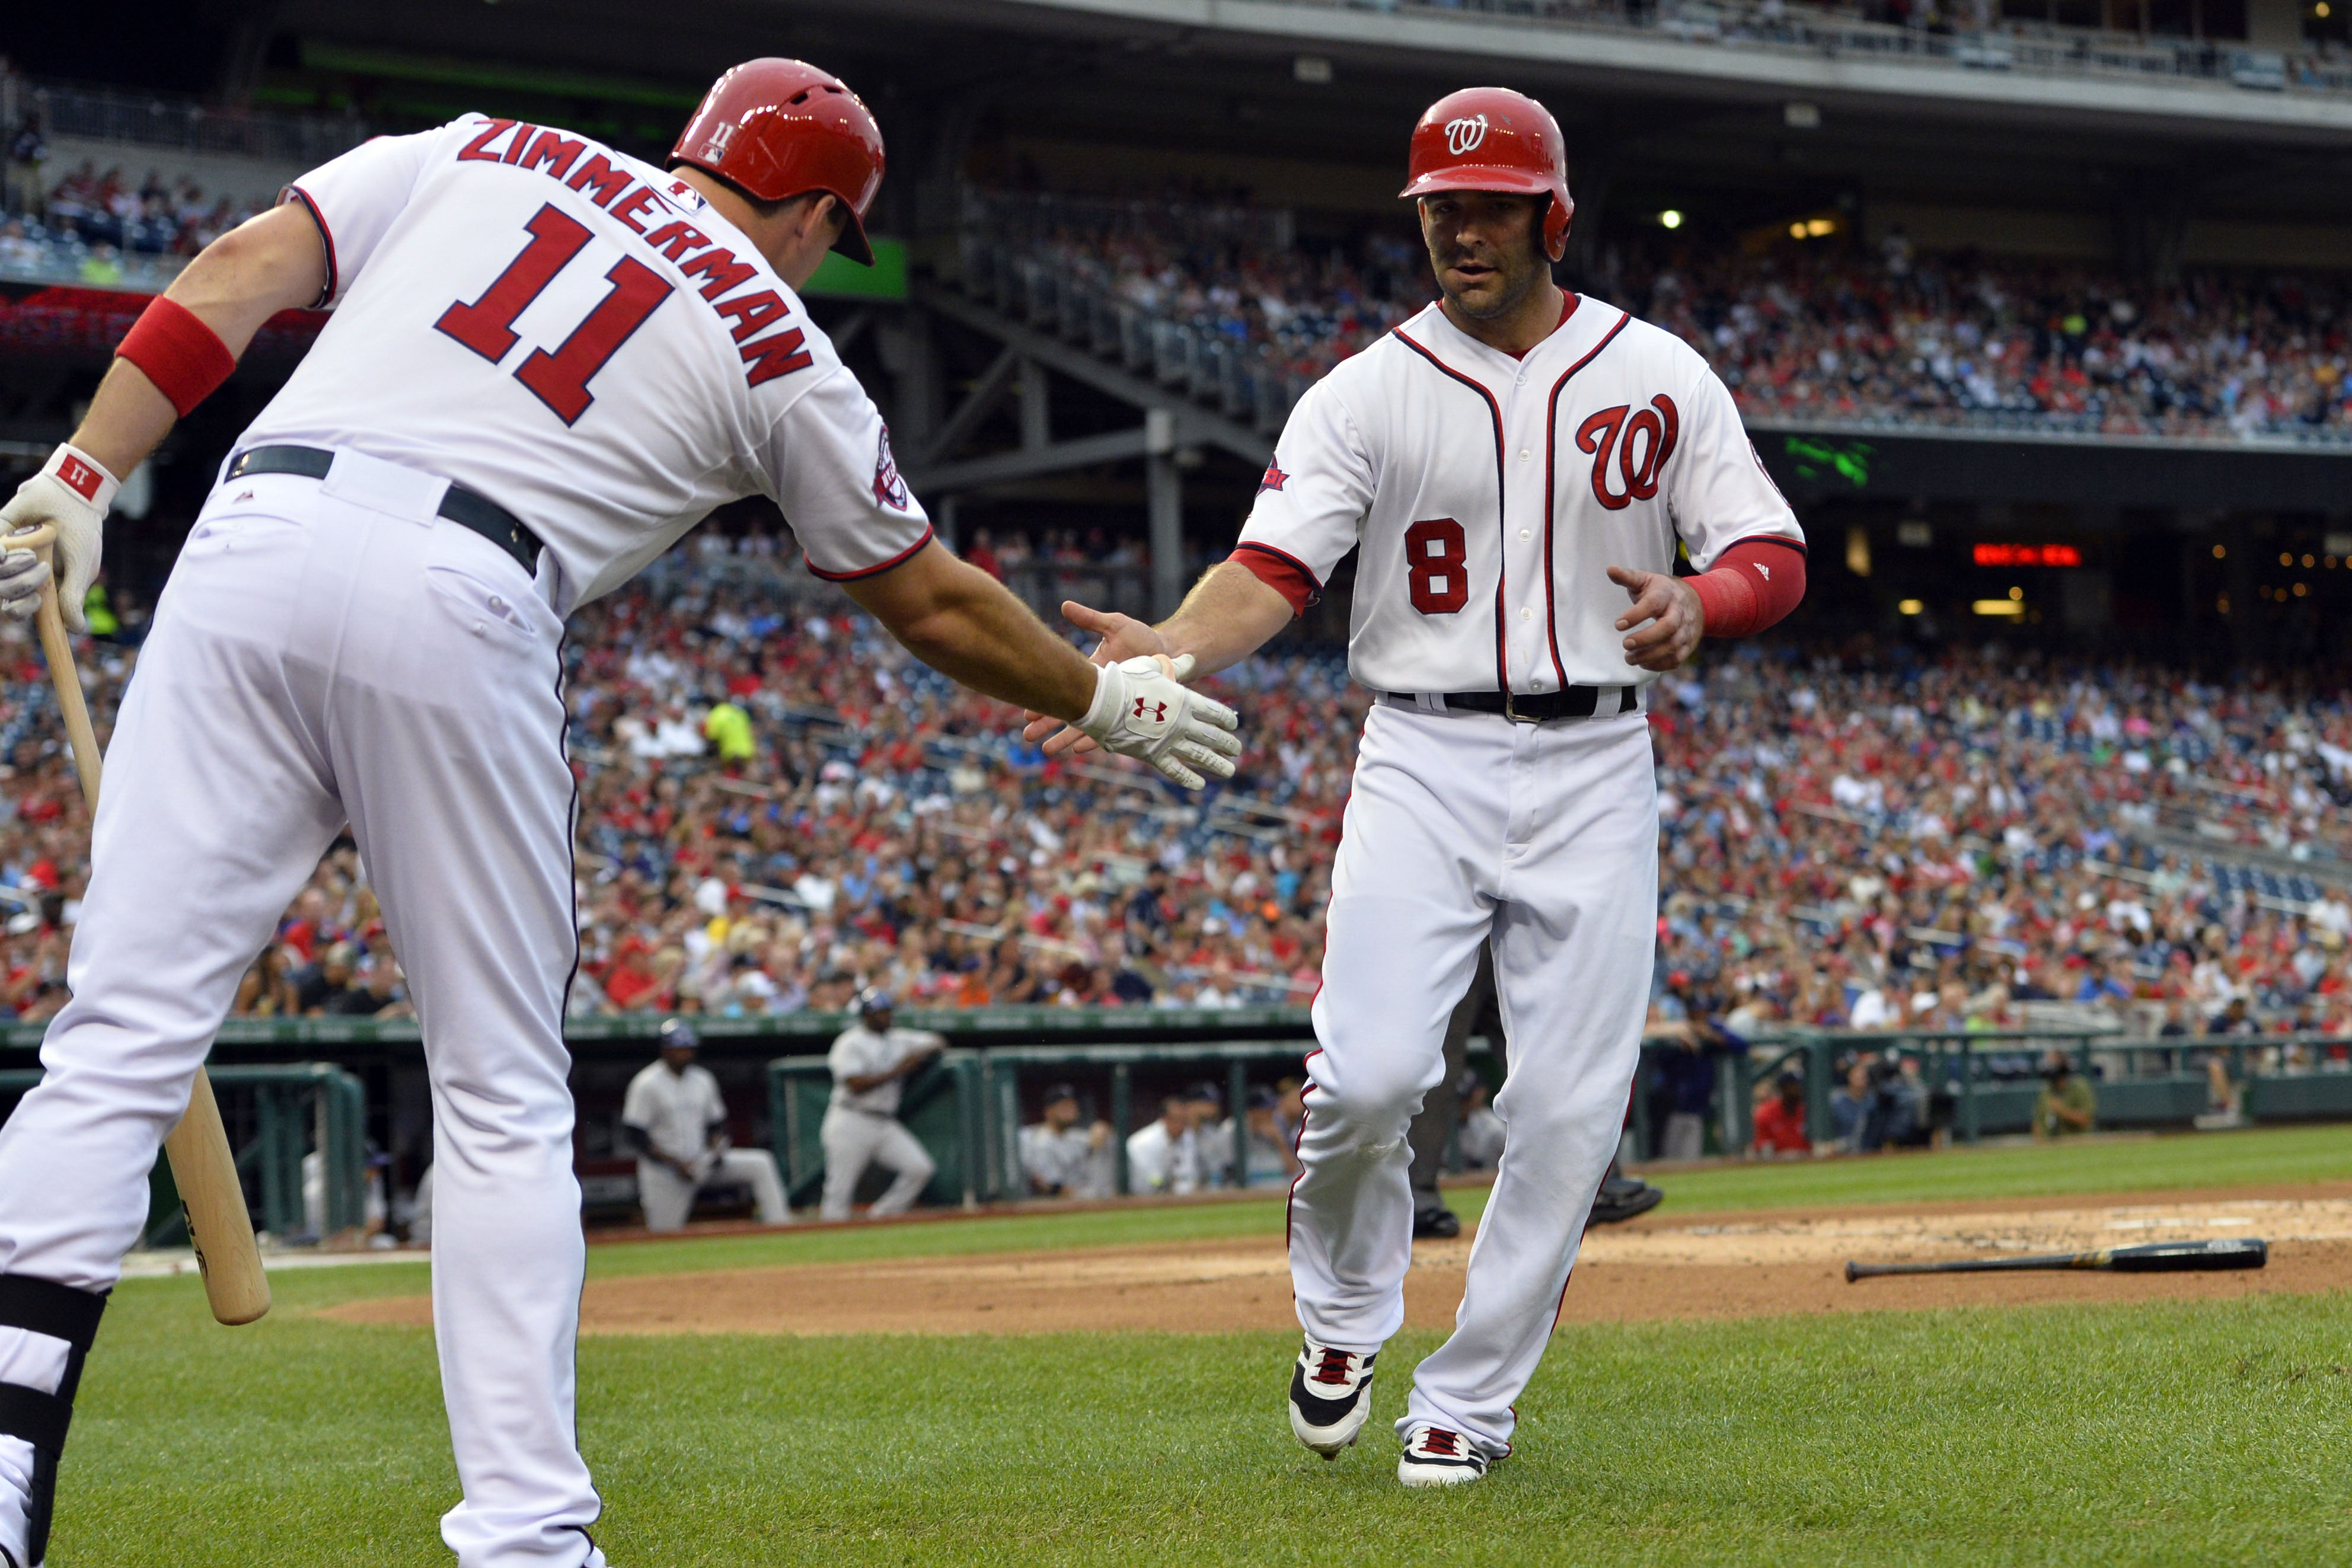 The Nats will play their next nine games and sixteen of their next nineteen at home.